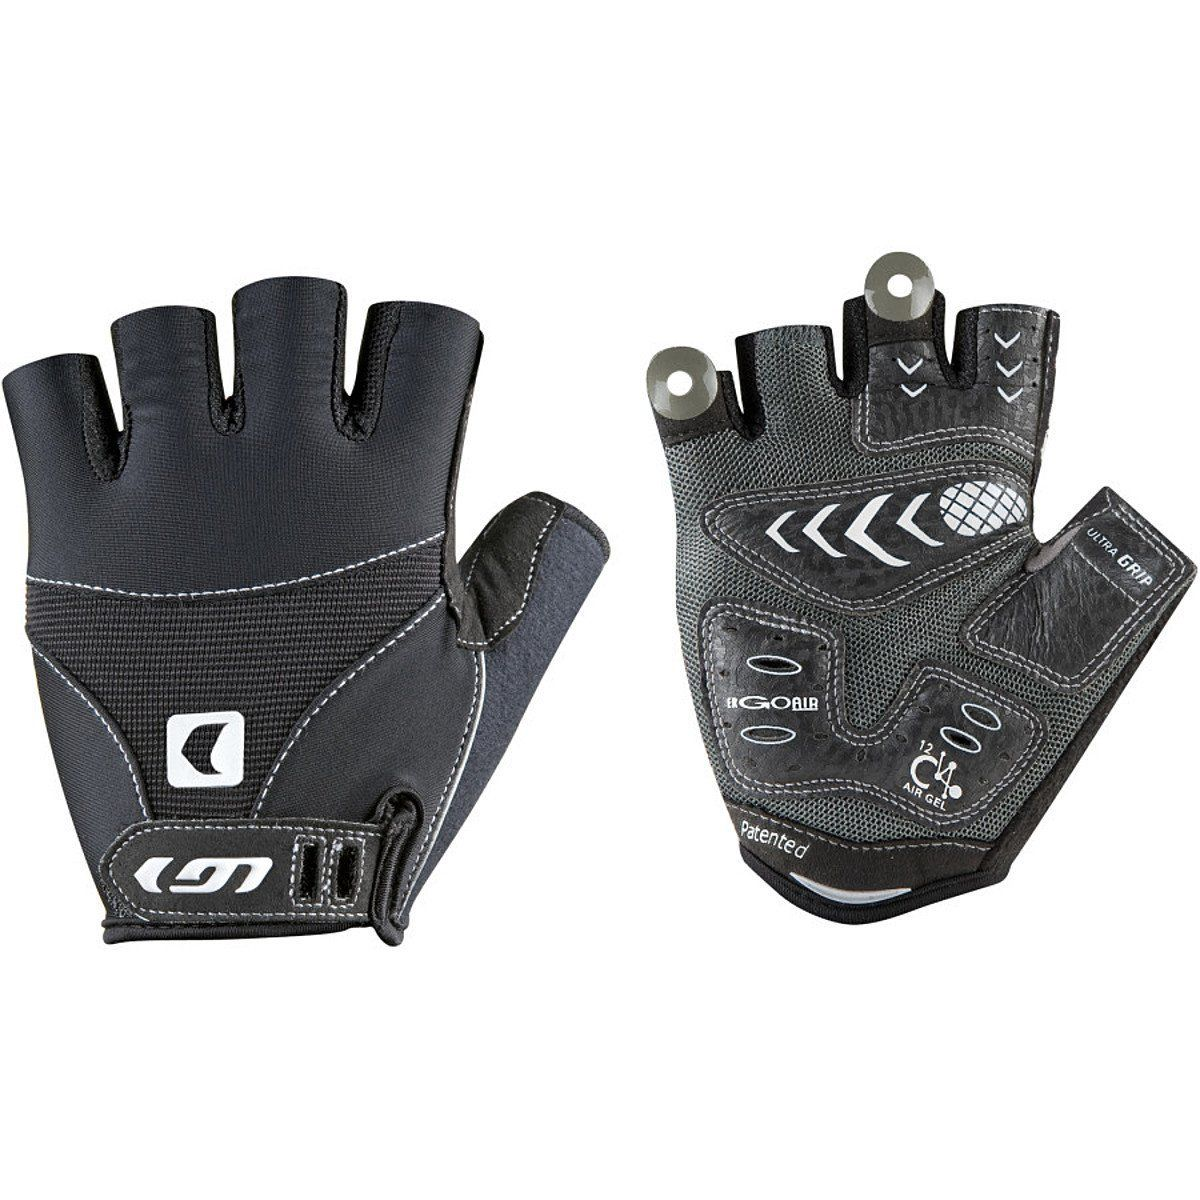 Top 10 Best Cycling Gloves In 2019 Reviews Bike Gloves Cycling